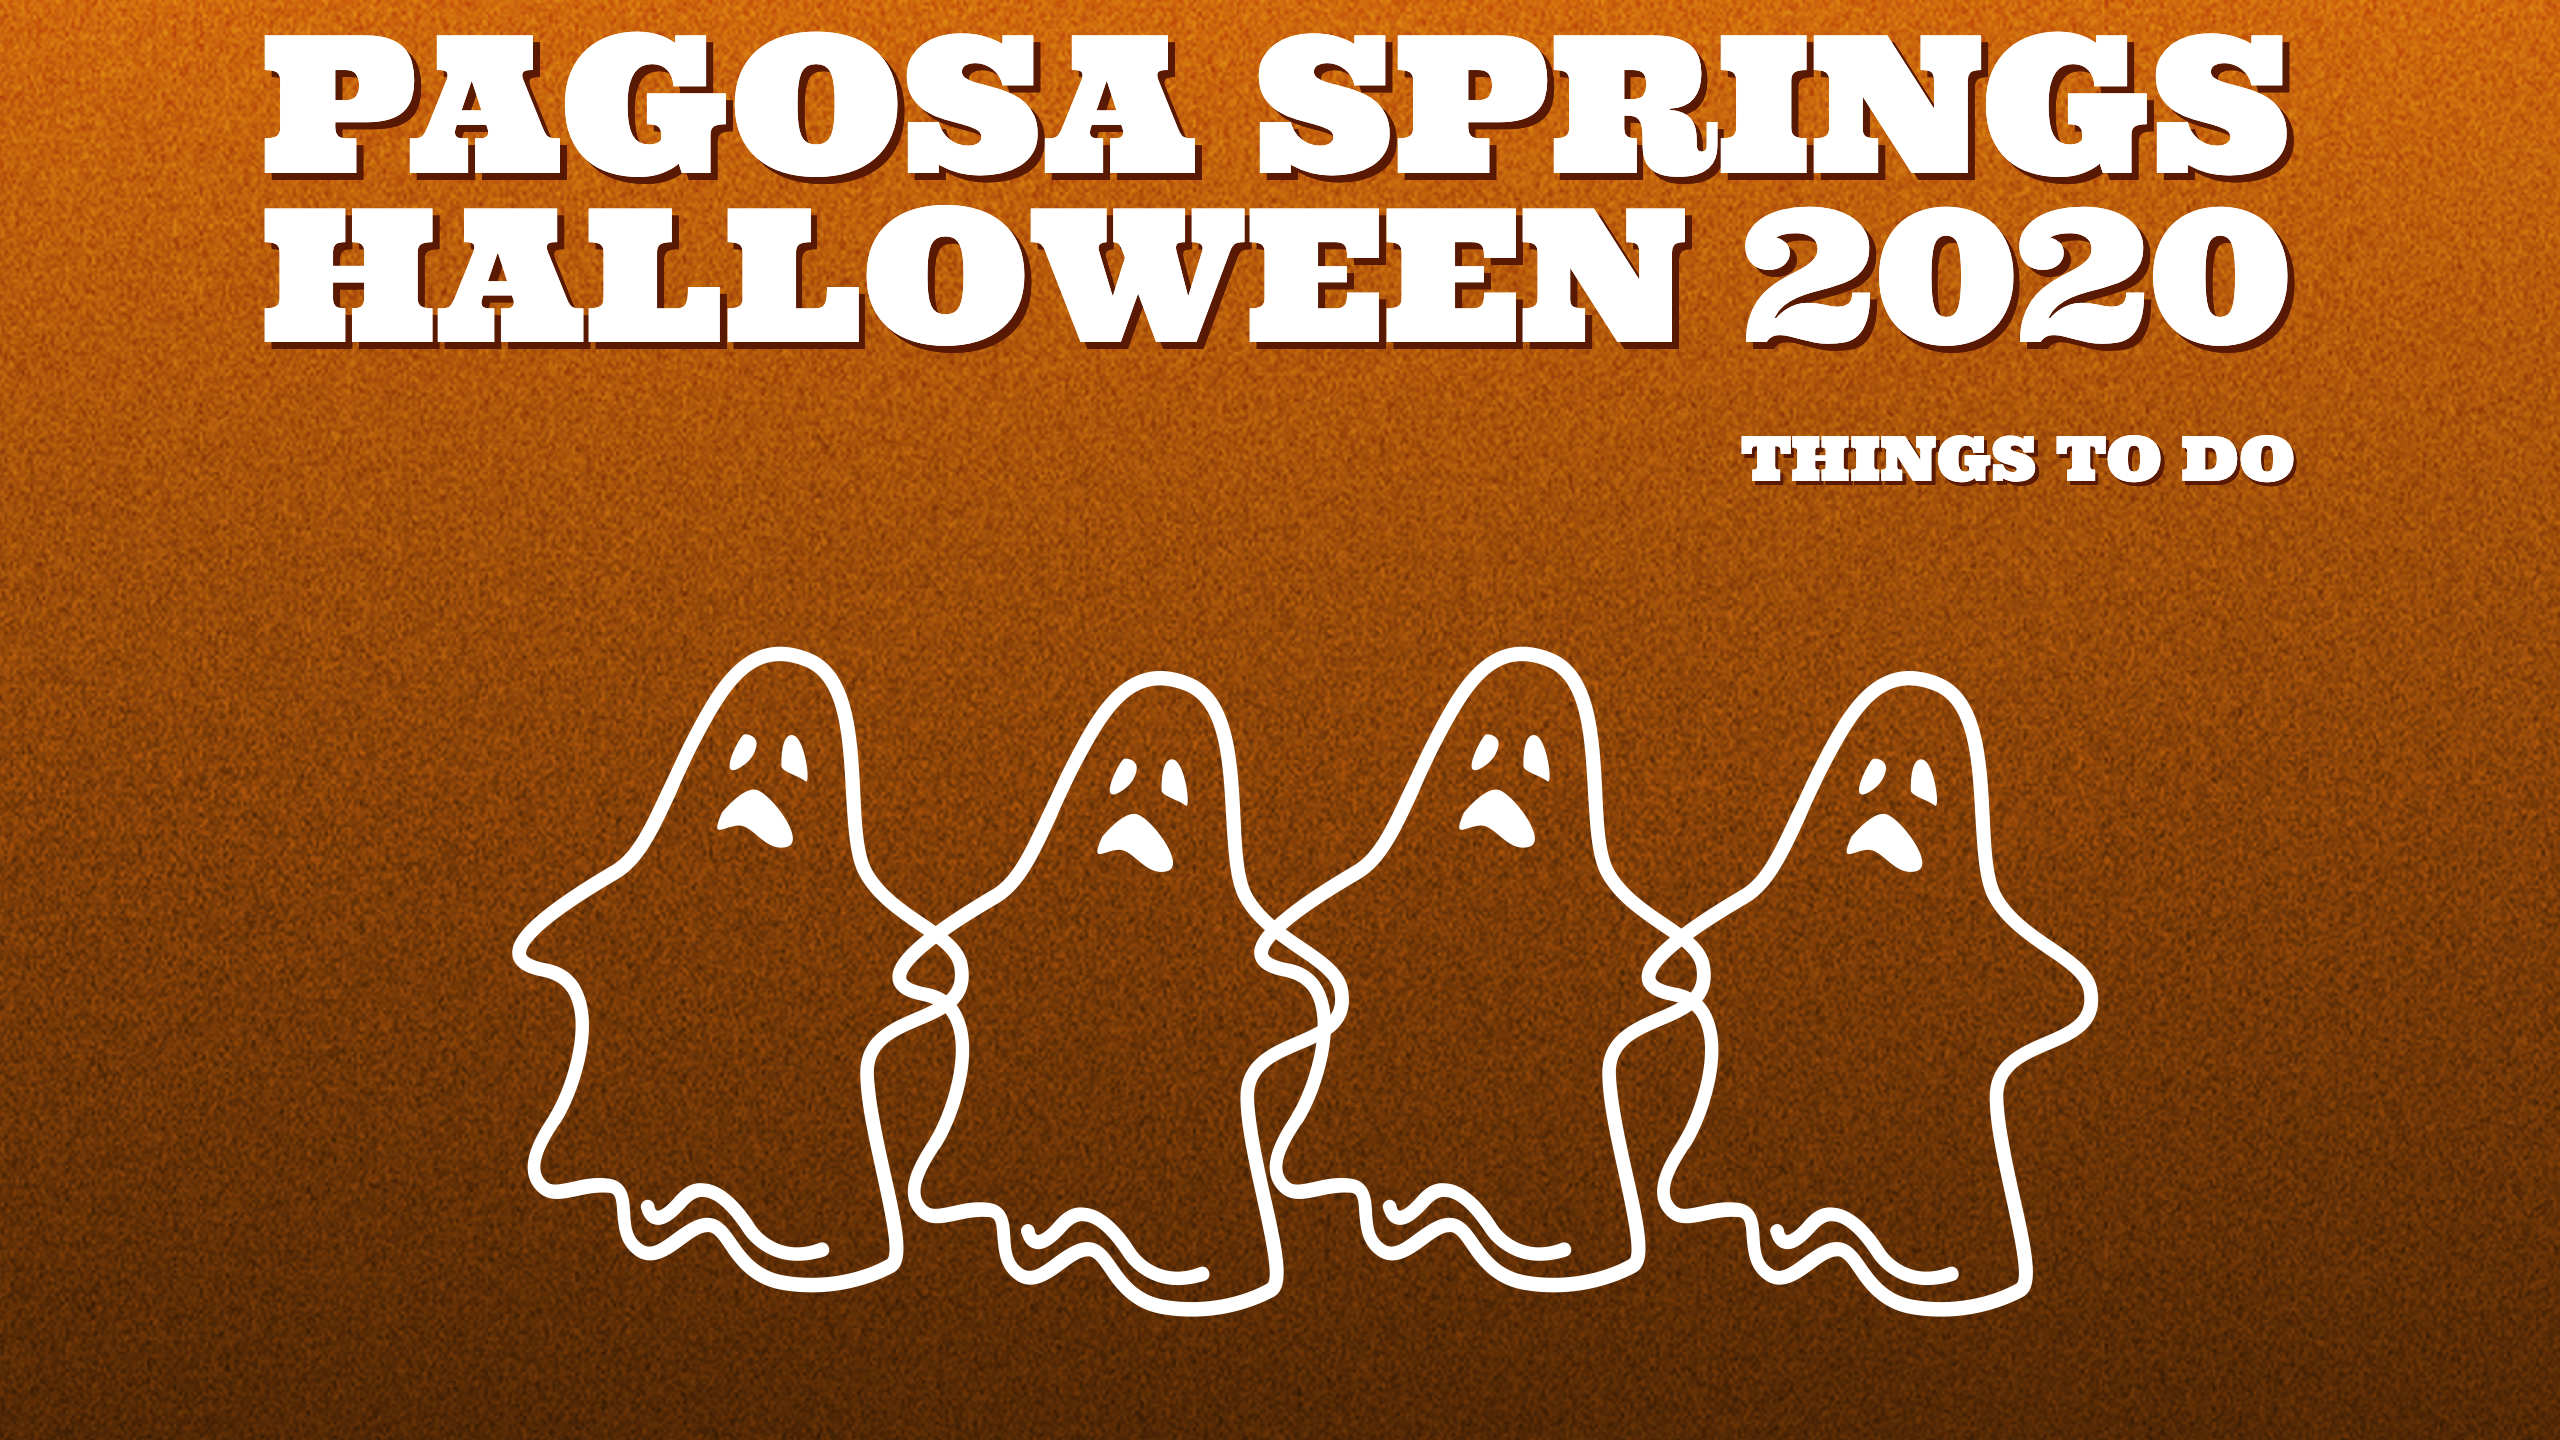 Pagosa Springs Halloween 2020; Things to Do